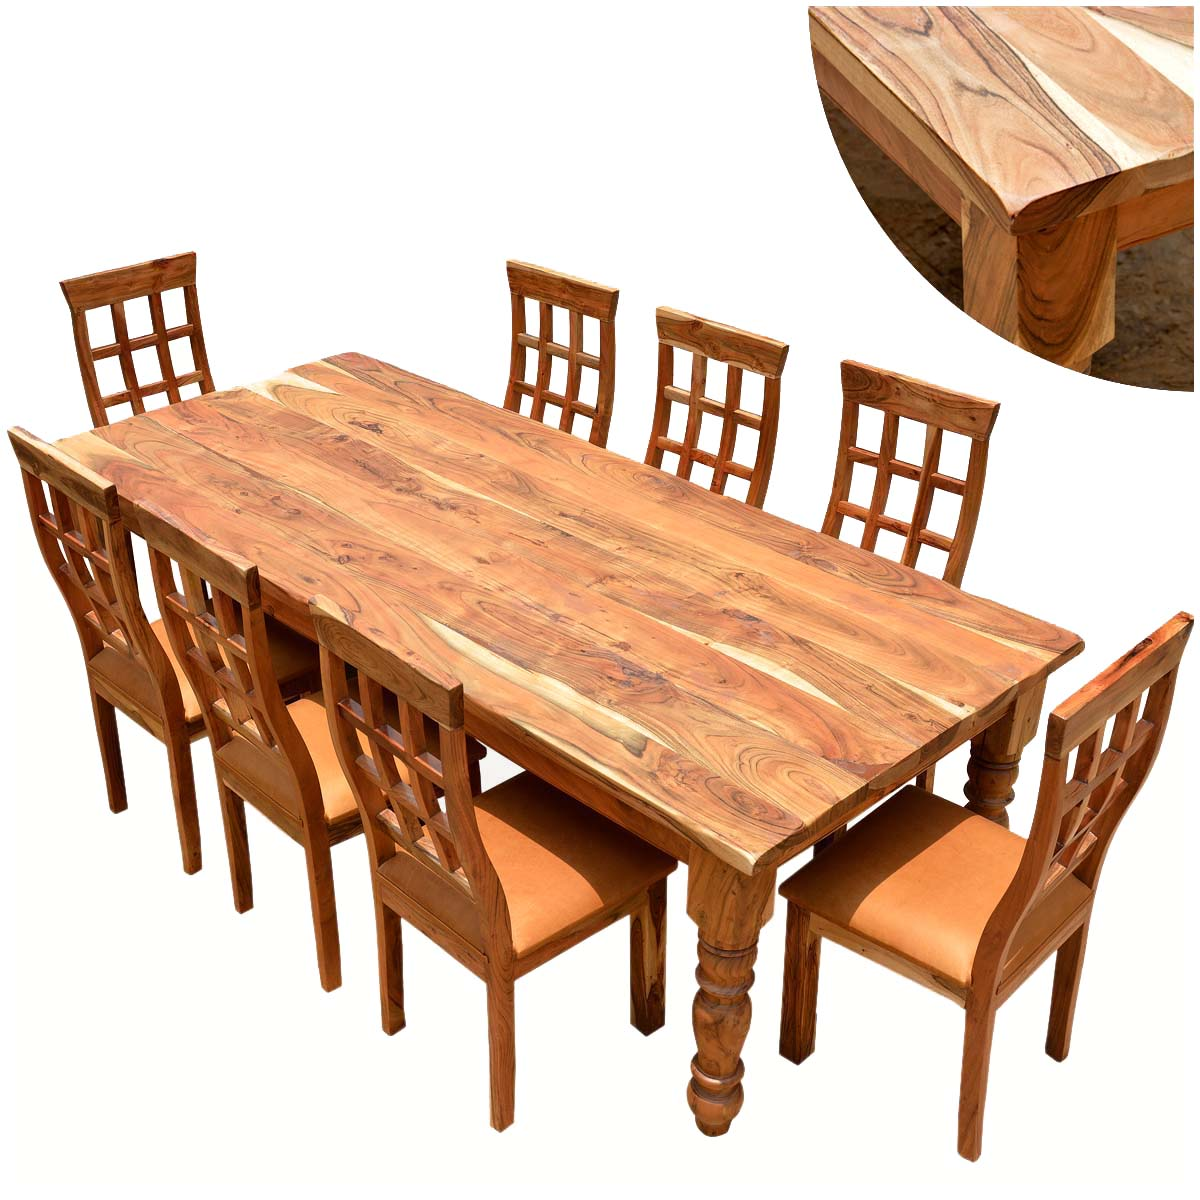 rustic dining table set photo - 10